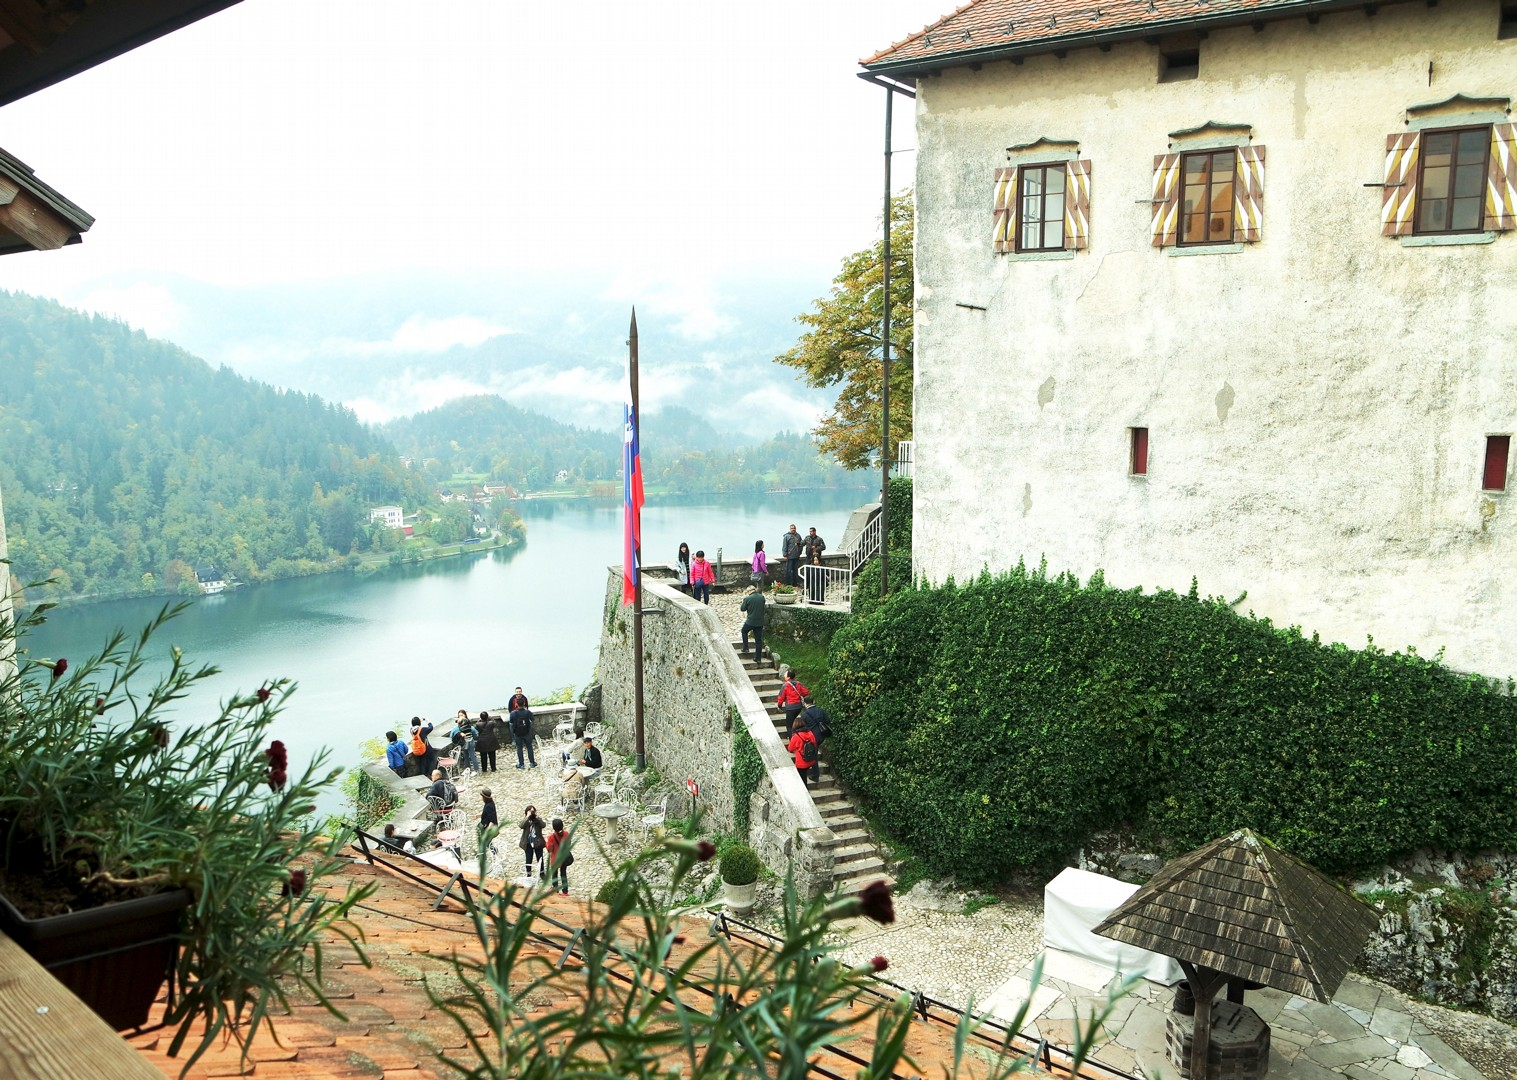 lake-bled-slovenia-self-guided-family-cycling-holiday.JPG - Slovenia - Magical Lake Bled - Self-Guided Family Cycling Holiday - Family Cycling